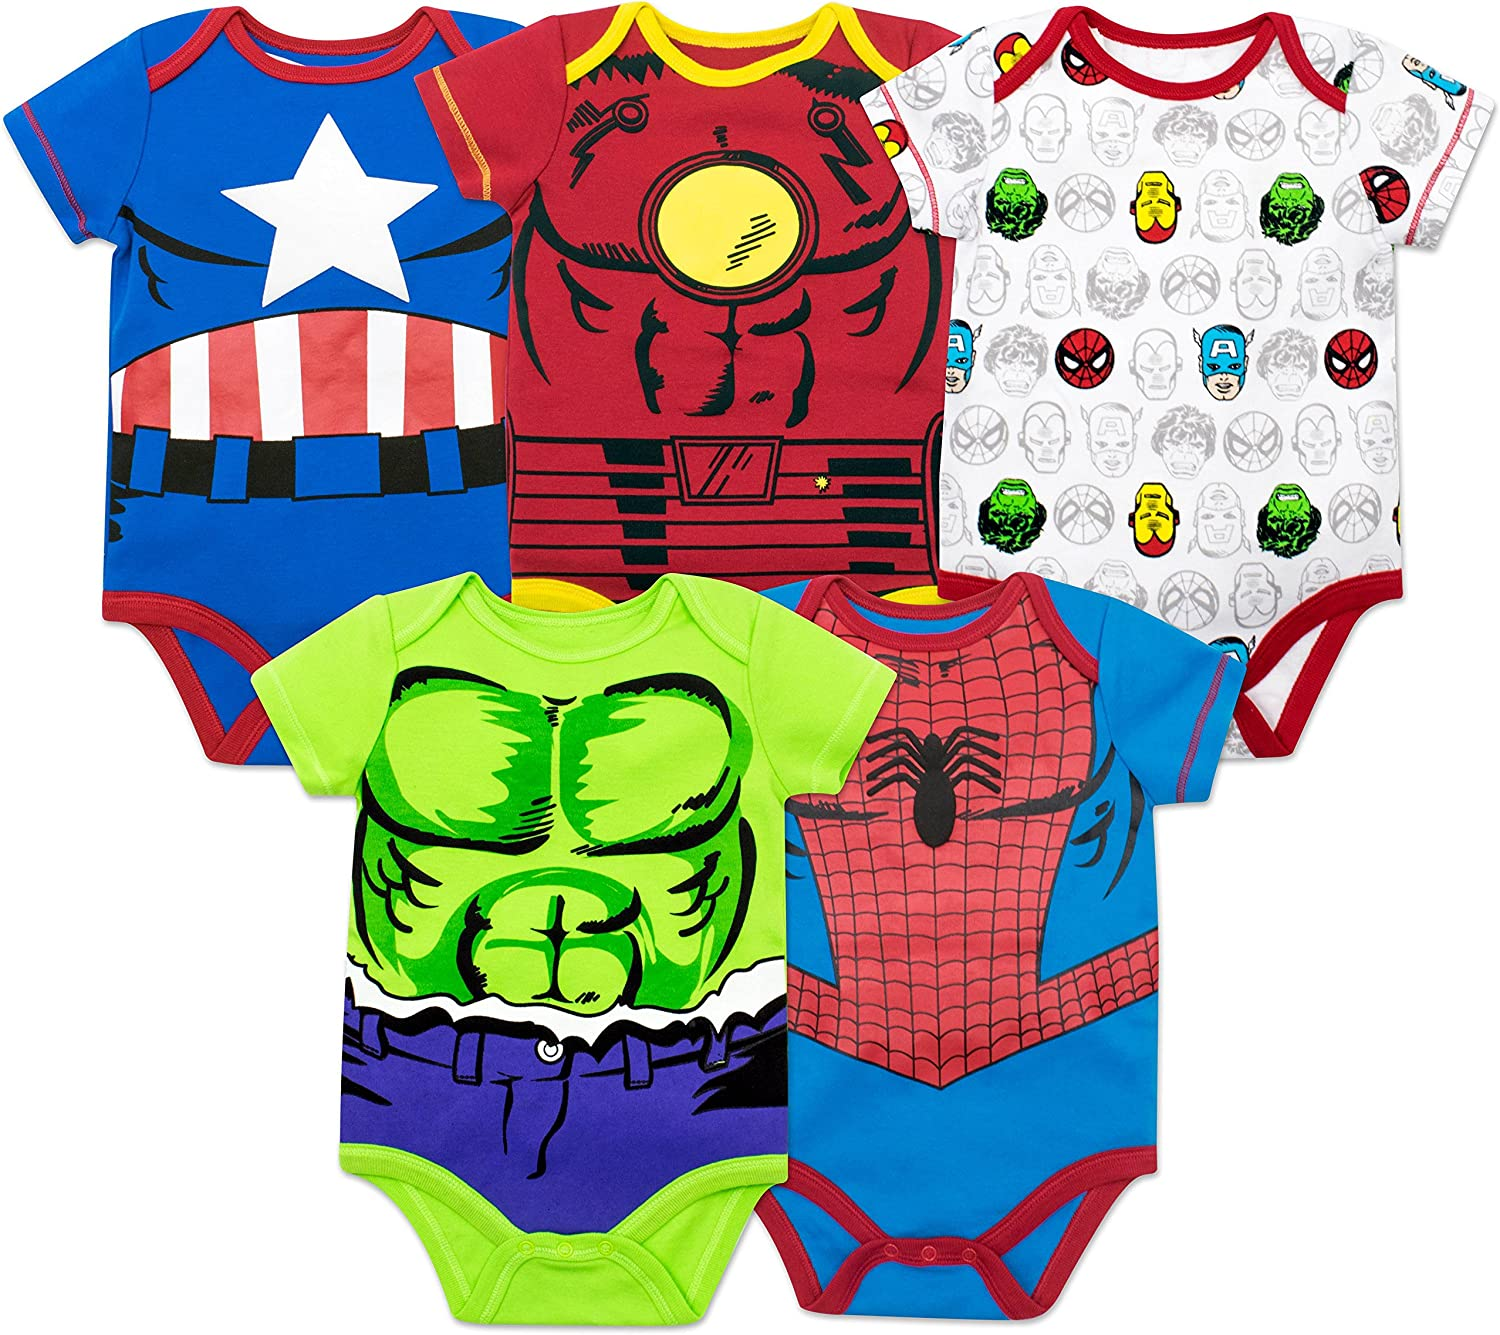 Marvel Baby Boys 5 Pack Bodysuits - The Hulk  Spiderman  Iron Man and Captain America